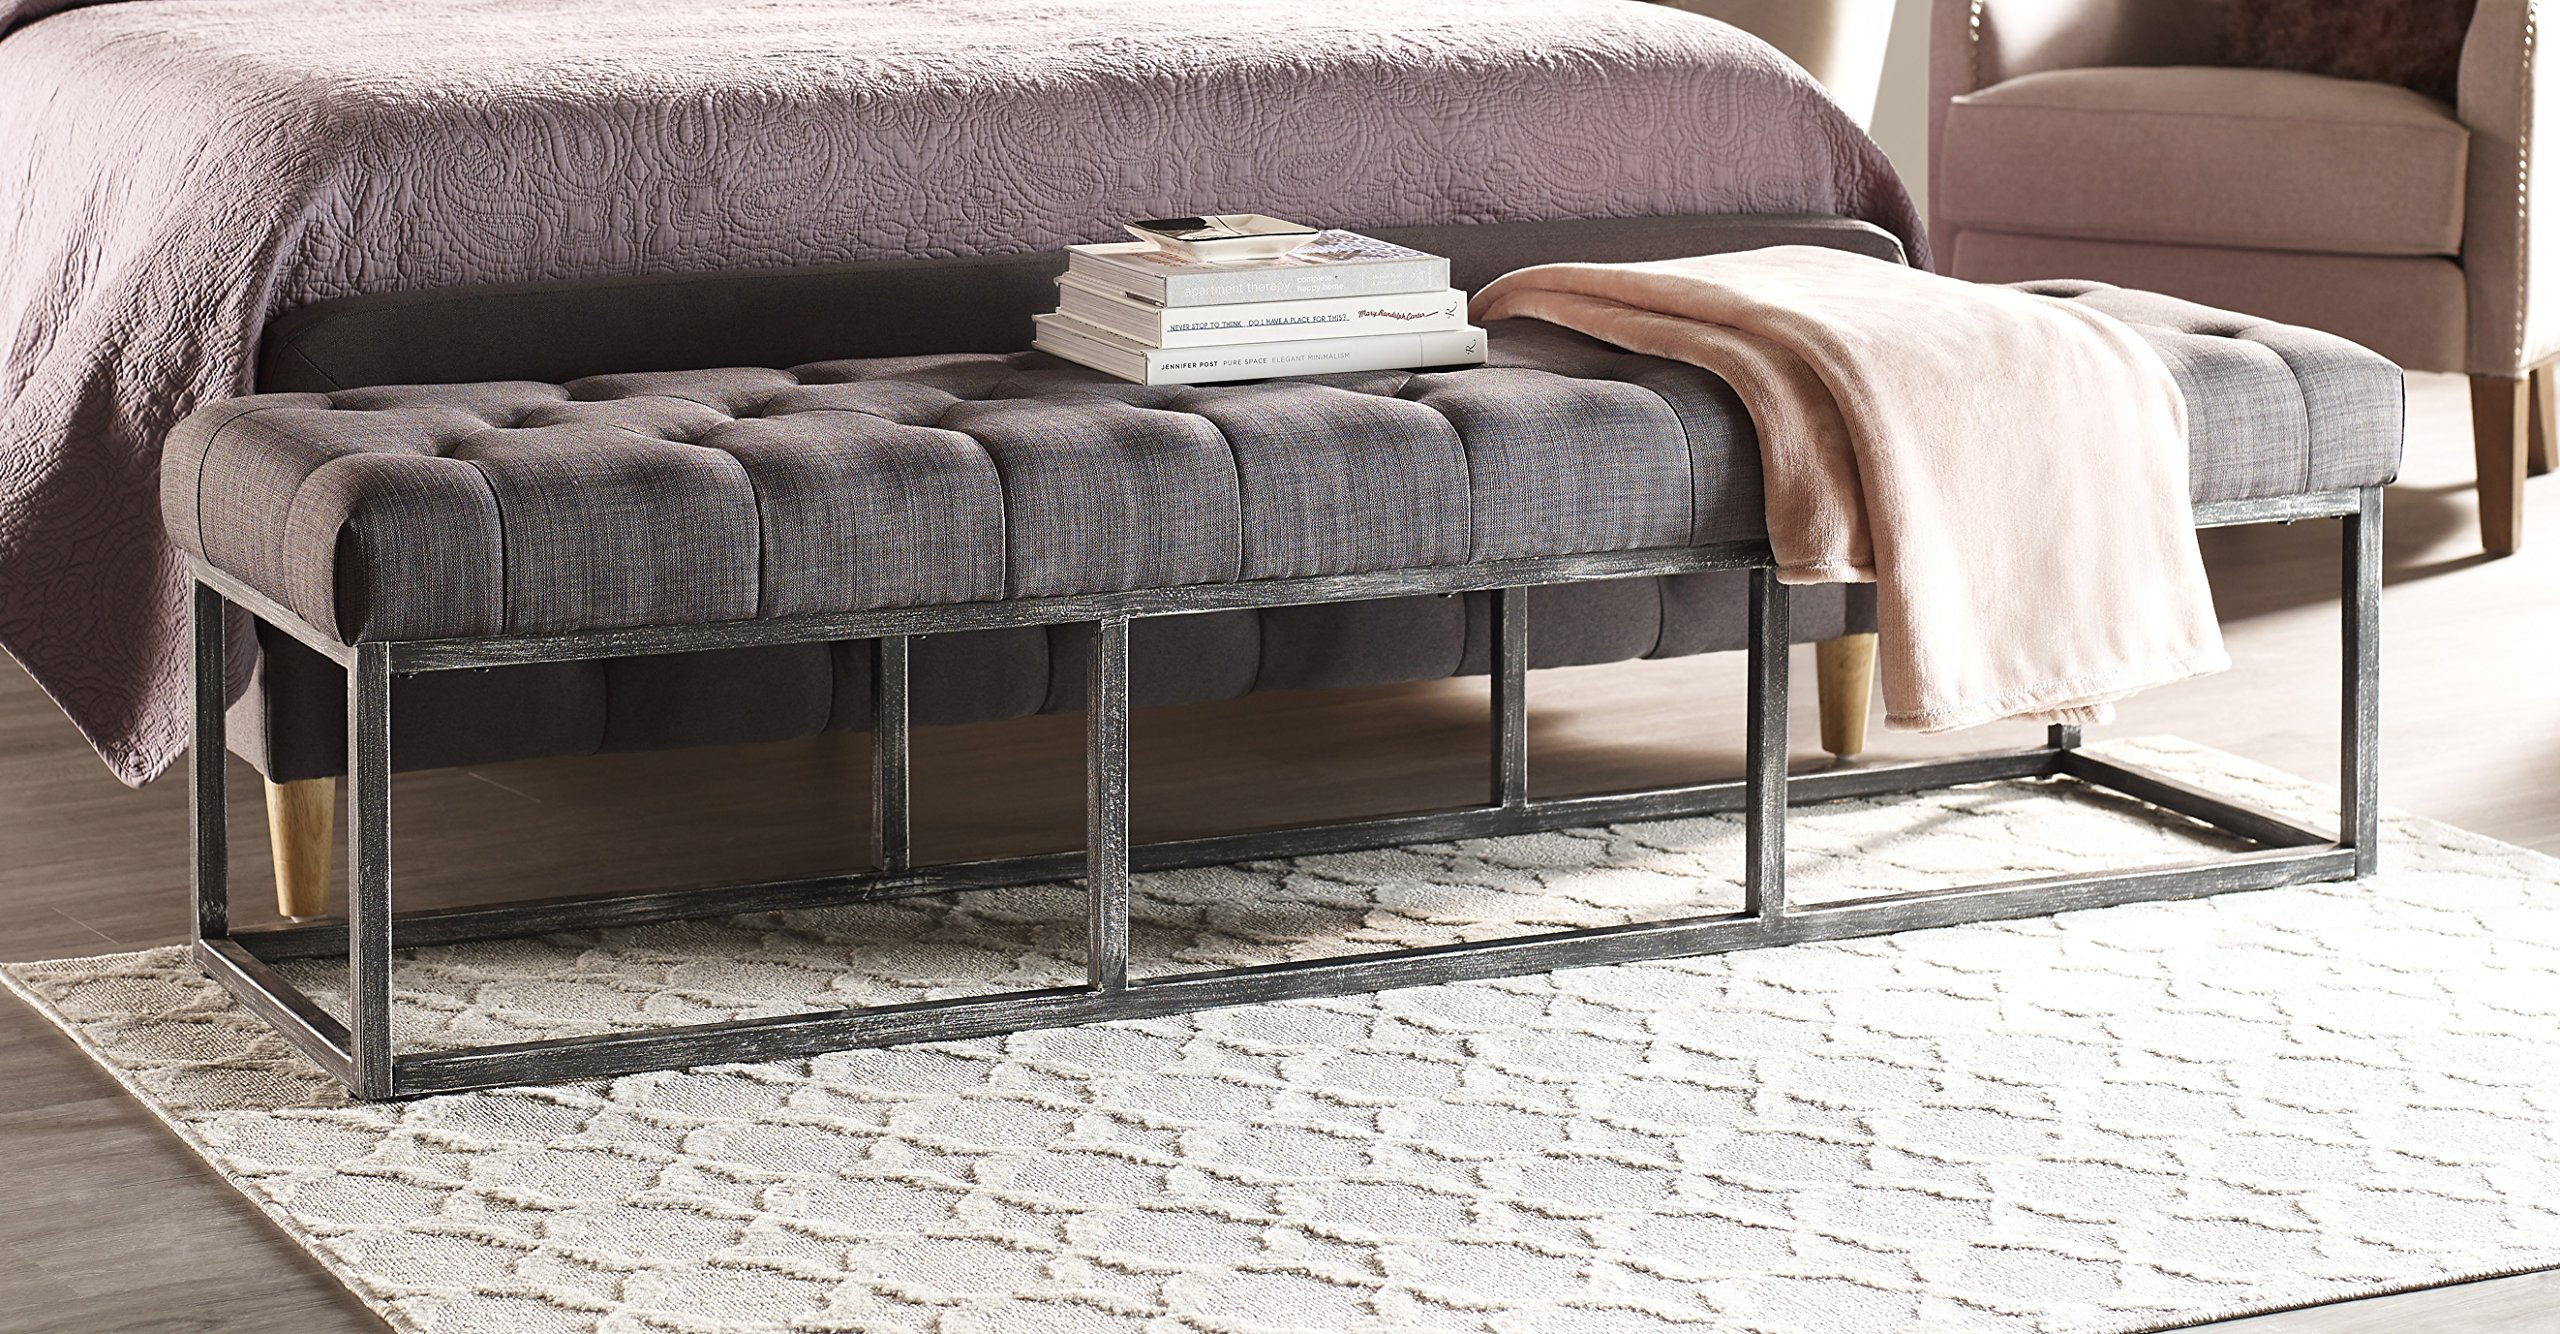 Serta Danes Tufted Bench with Iron Legs, Charcoal